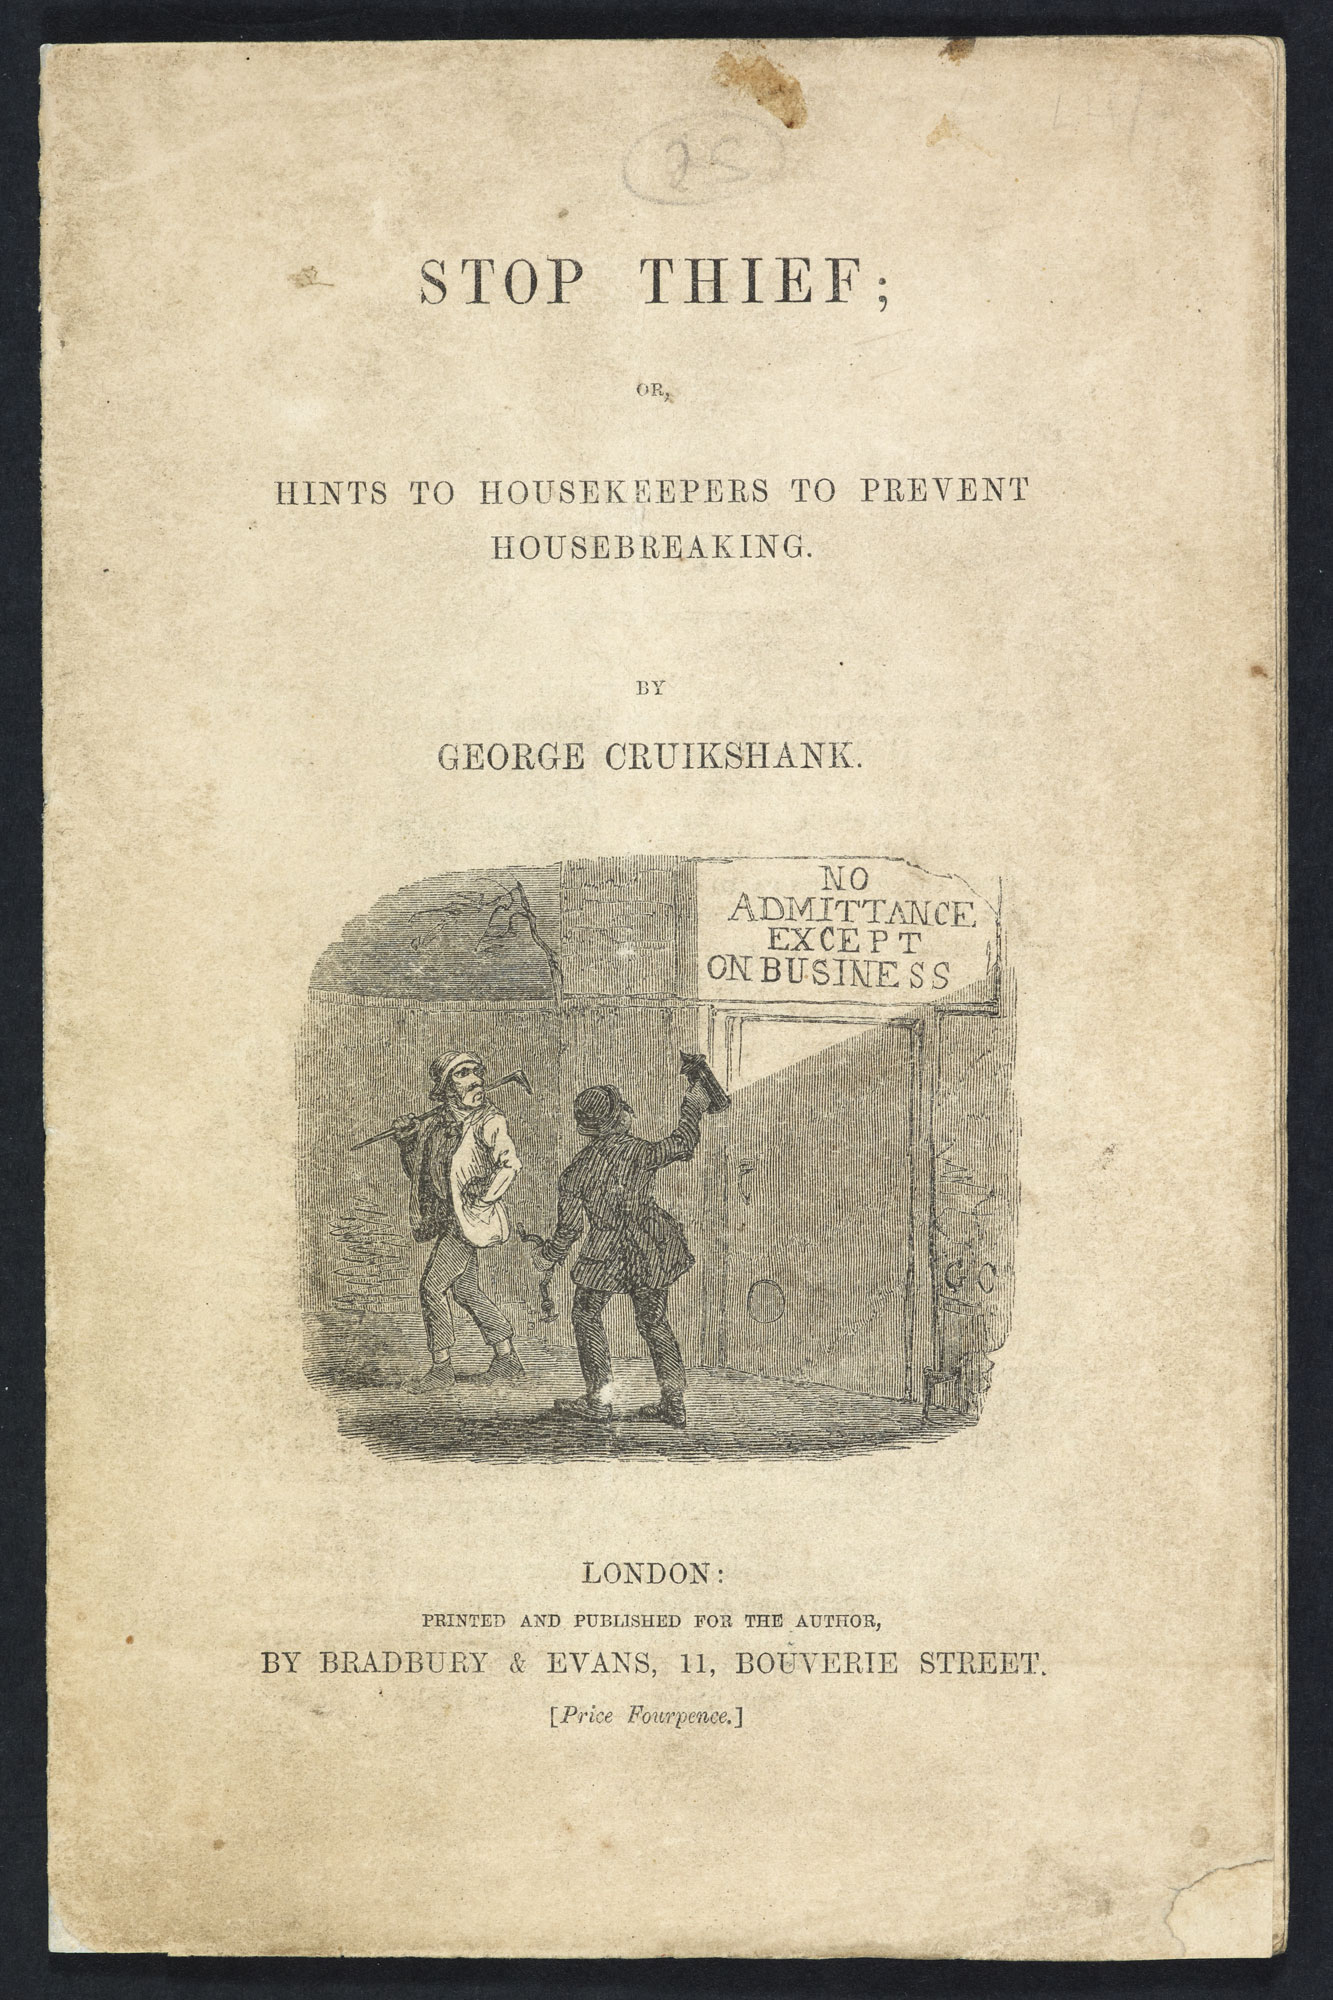 A pamphlet on housebreaking by George Cruikshank [page: front cover]